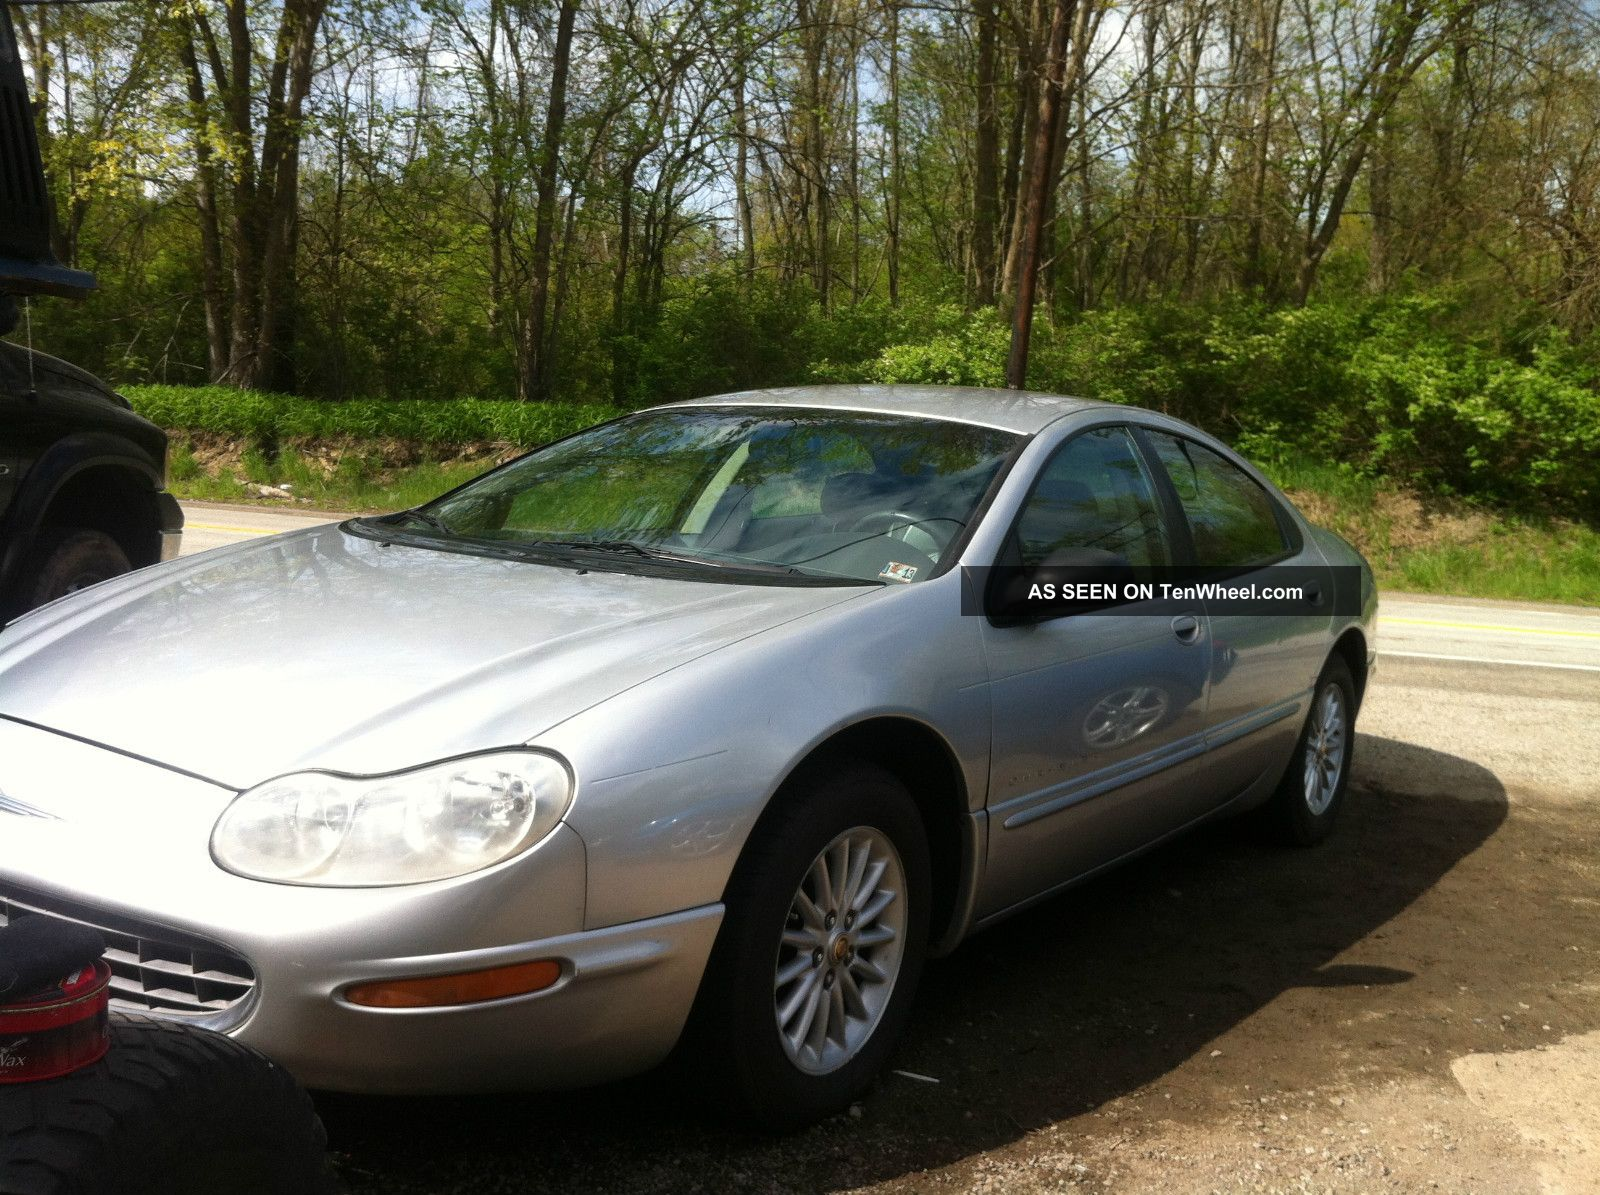 2000 chrysler concorde lxi sedan 4 door 3 2l 2000 chrysler concorde lxi sedan 4 door 3 2l